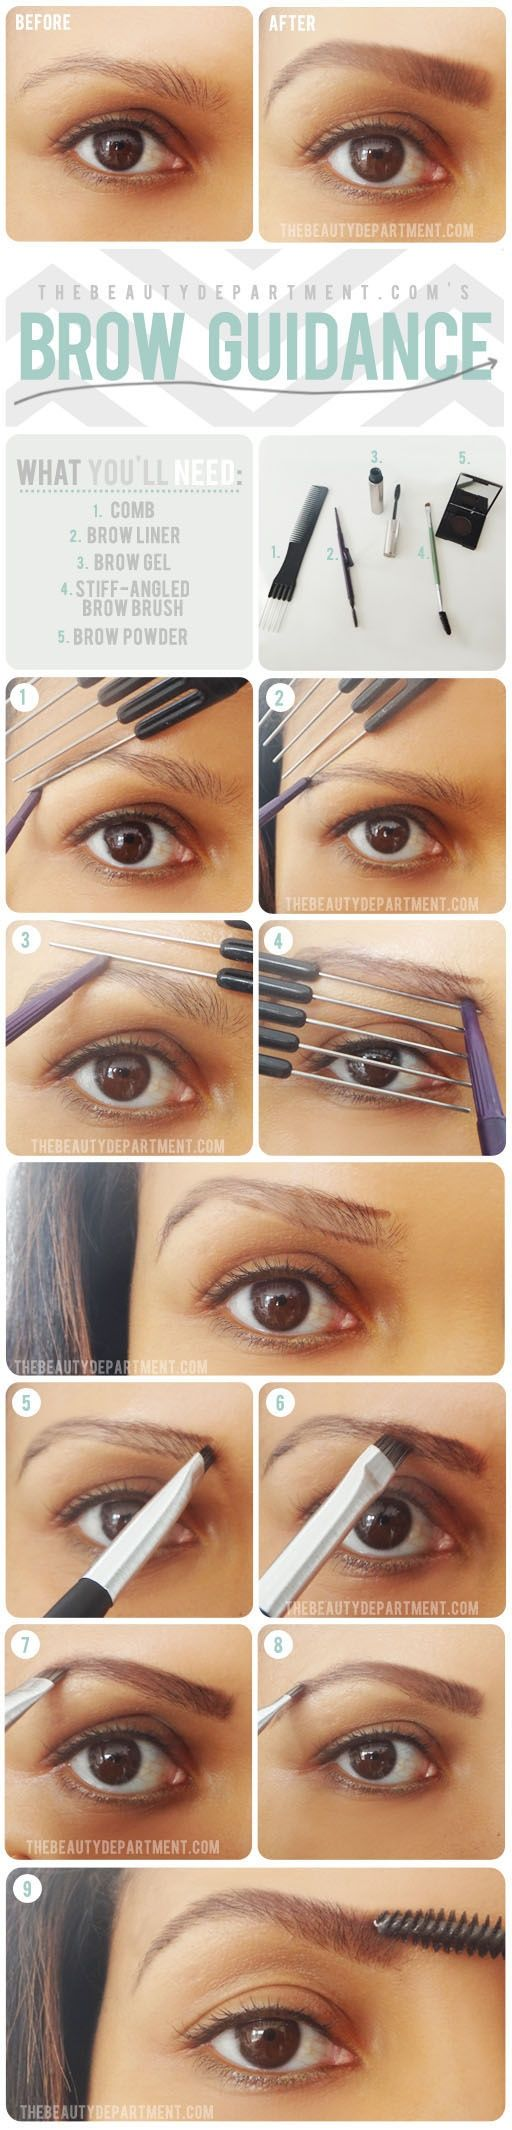 best images about makeup for dummies on pinterest smoky eye